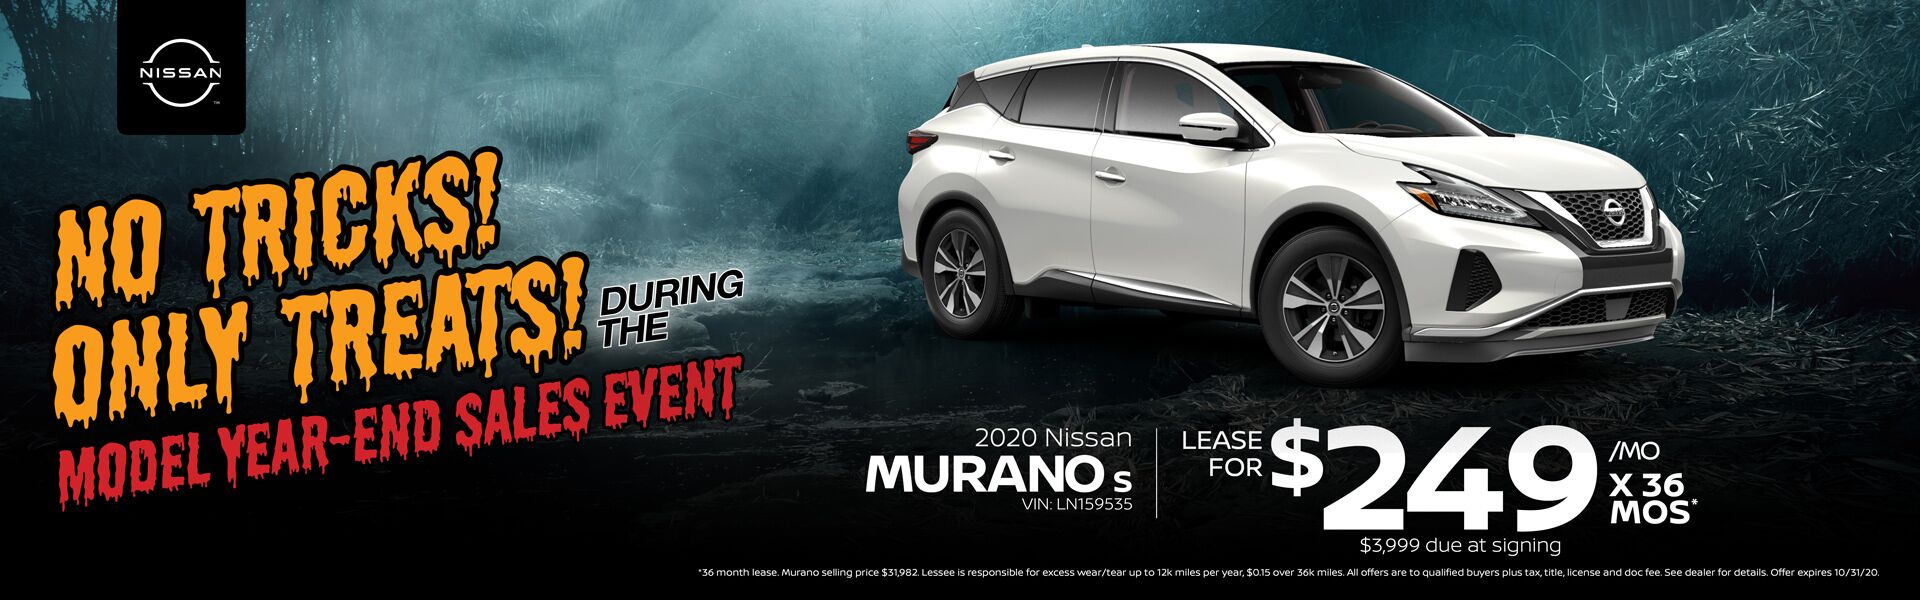 2020 Nissan Murano Lease for $249/mo. for 36 mos.